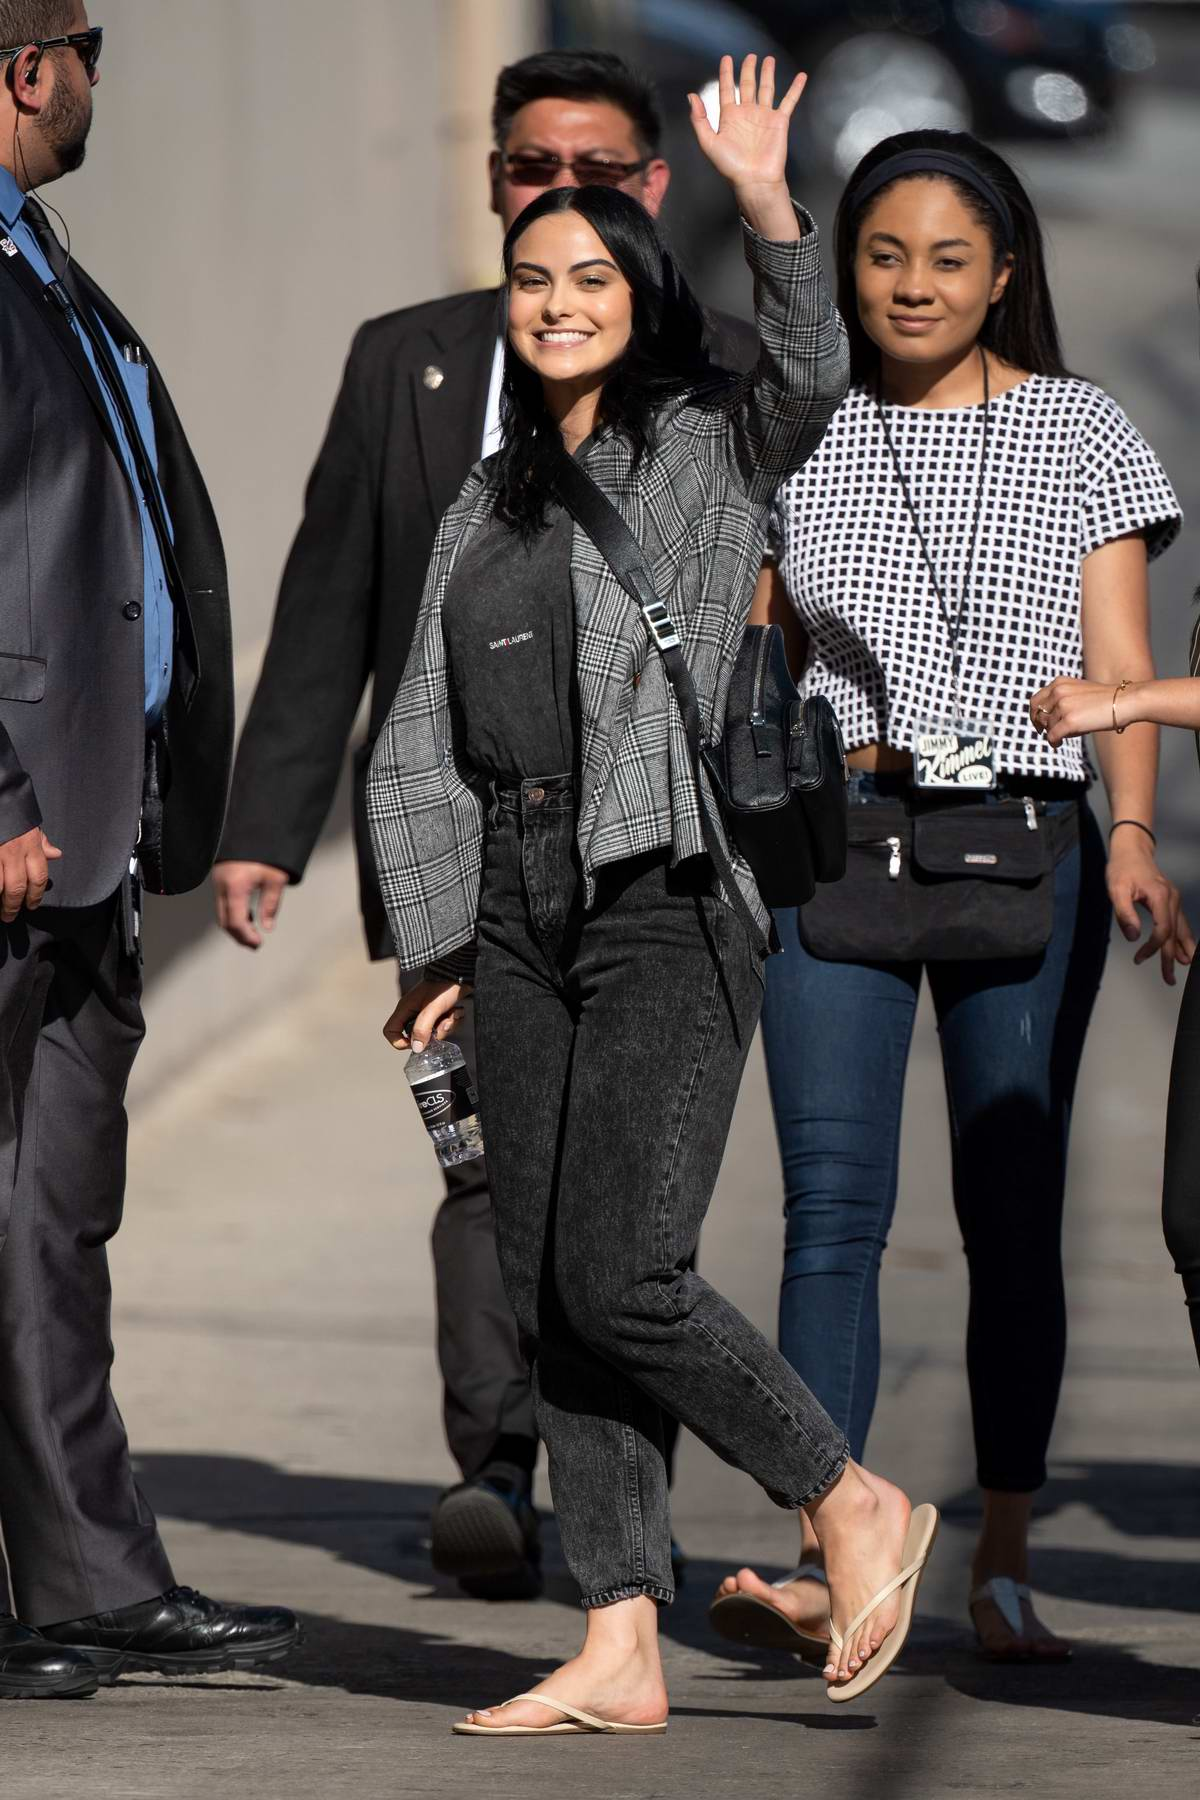 Camila Mendes waves for the camera as she arrives for her appearance on 'Jimmy Kimmel Live!' in Hollywood, California